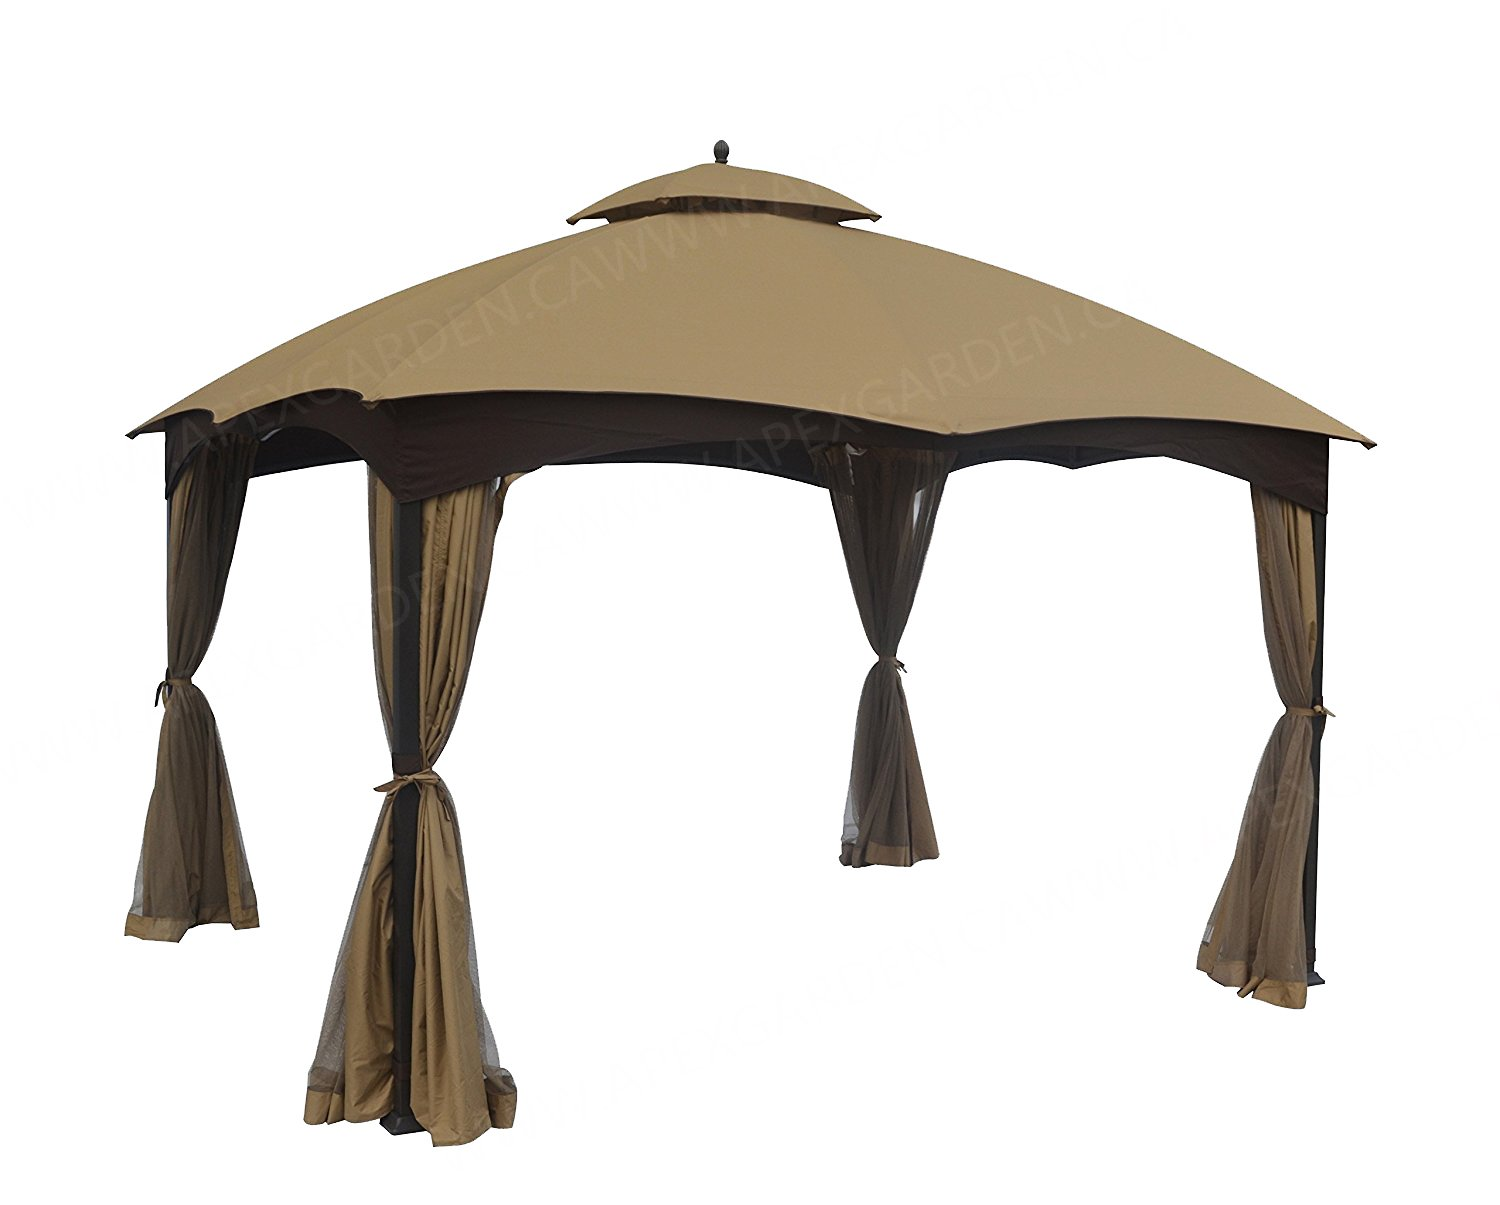 APEX GARDEN Replacement Canopy Top for Lowes Allen Roth 10X12 Gazebo #GF-12S004B-1